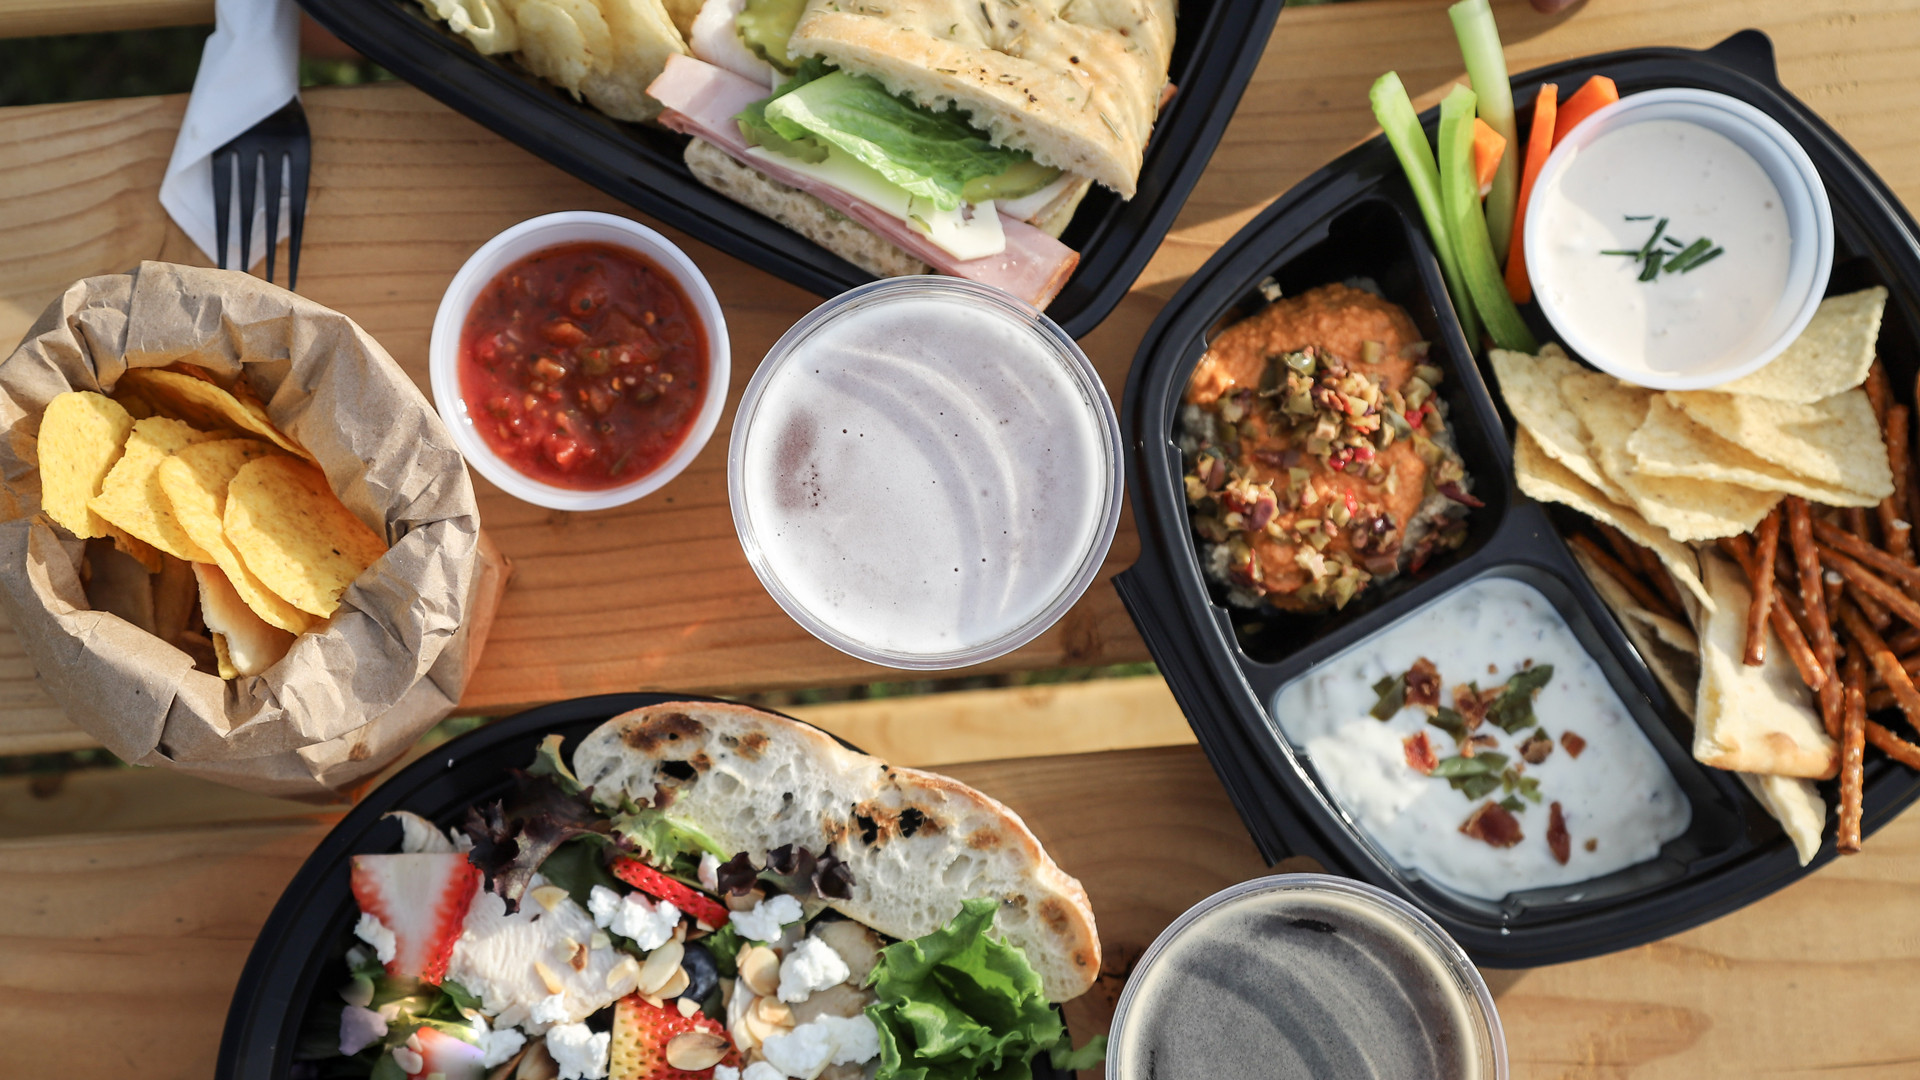 New Hampshire restaurants and activities | Sandwiches and snacks at Tuckerman Brewing in Conway New Hampshire